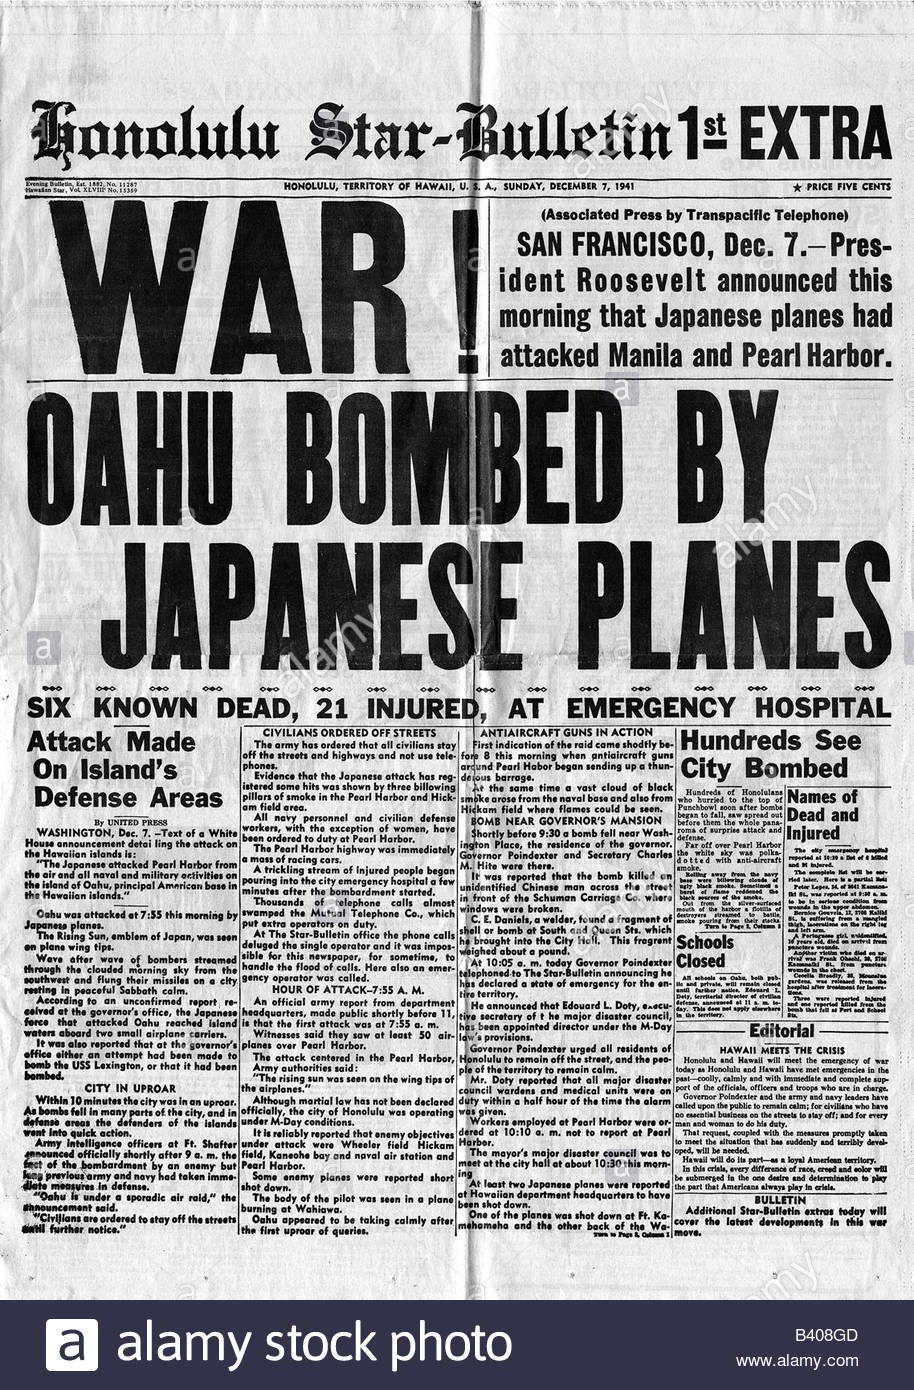 pearl harbor essay Pearl harbor essay japan's surprise attack on the us naval base at pearl harbor, hawaii, on the morning of december 7, 1941, resulted in one of the most costly defeats in american history over 2,000 american military and civilian personnel were killed as a result of the attack, and all eight of the us battleships moored in pearl harbor.